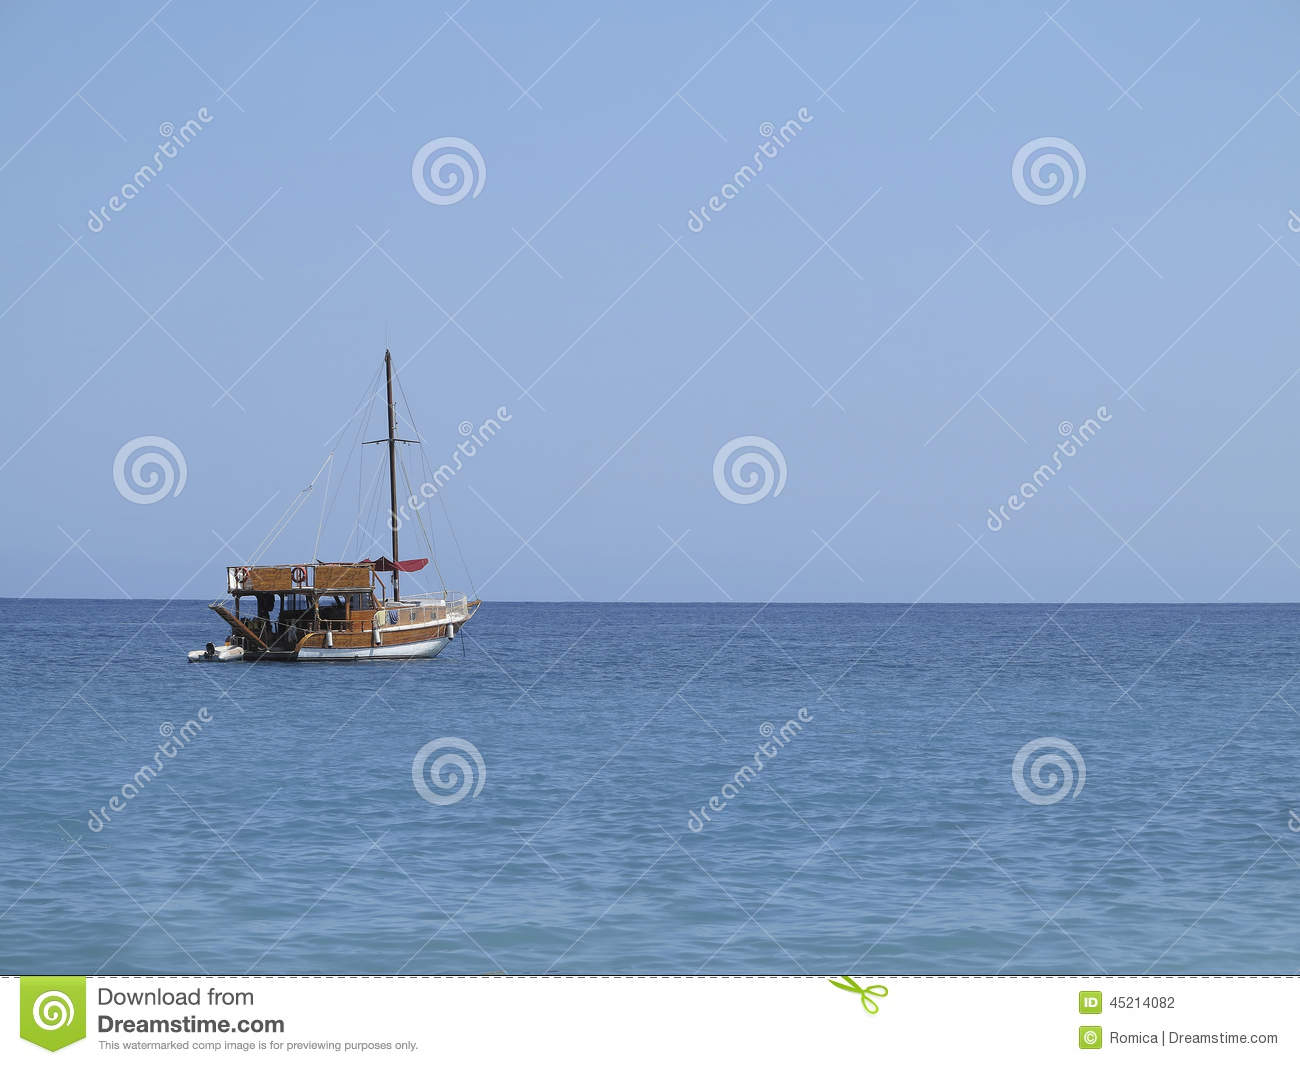 Old Wooden Fishing Boat Trawler Over Calm Blue Sea Stock Photo - Image ...